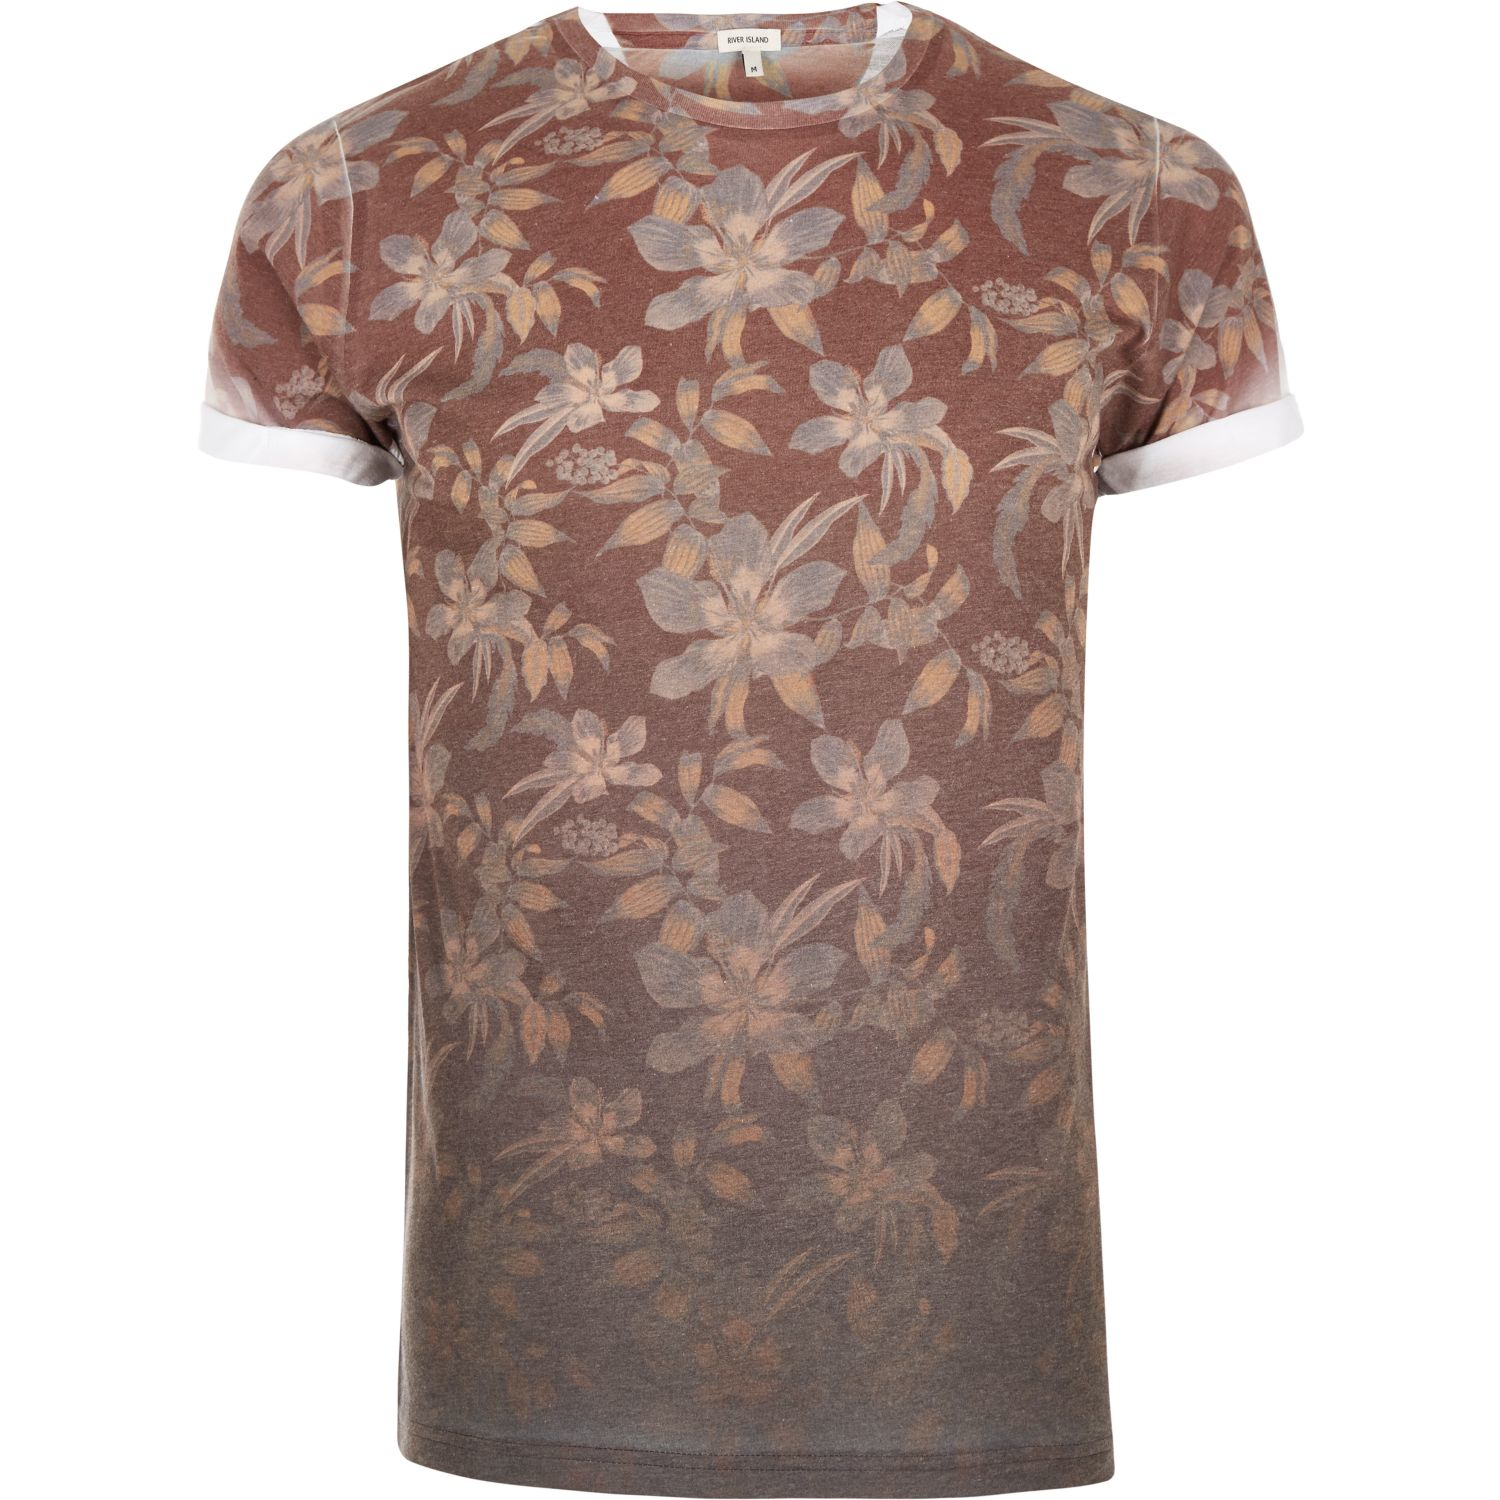 River island dark orange faded floral print t shirt in for Faded color t shirts